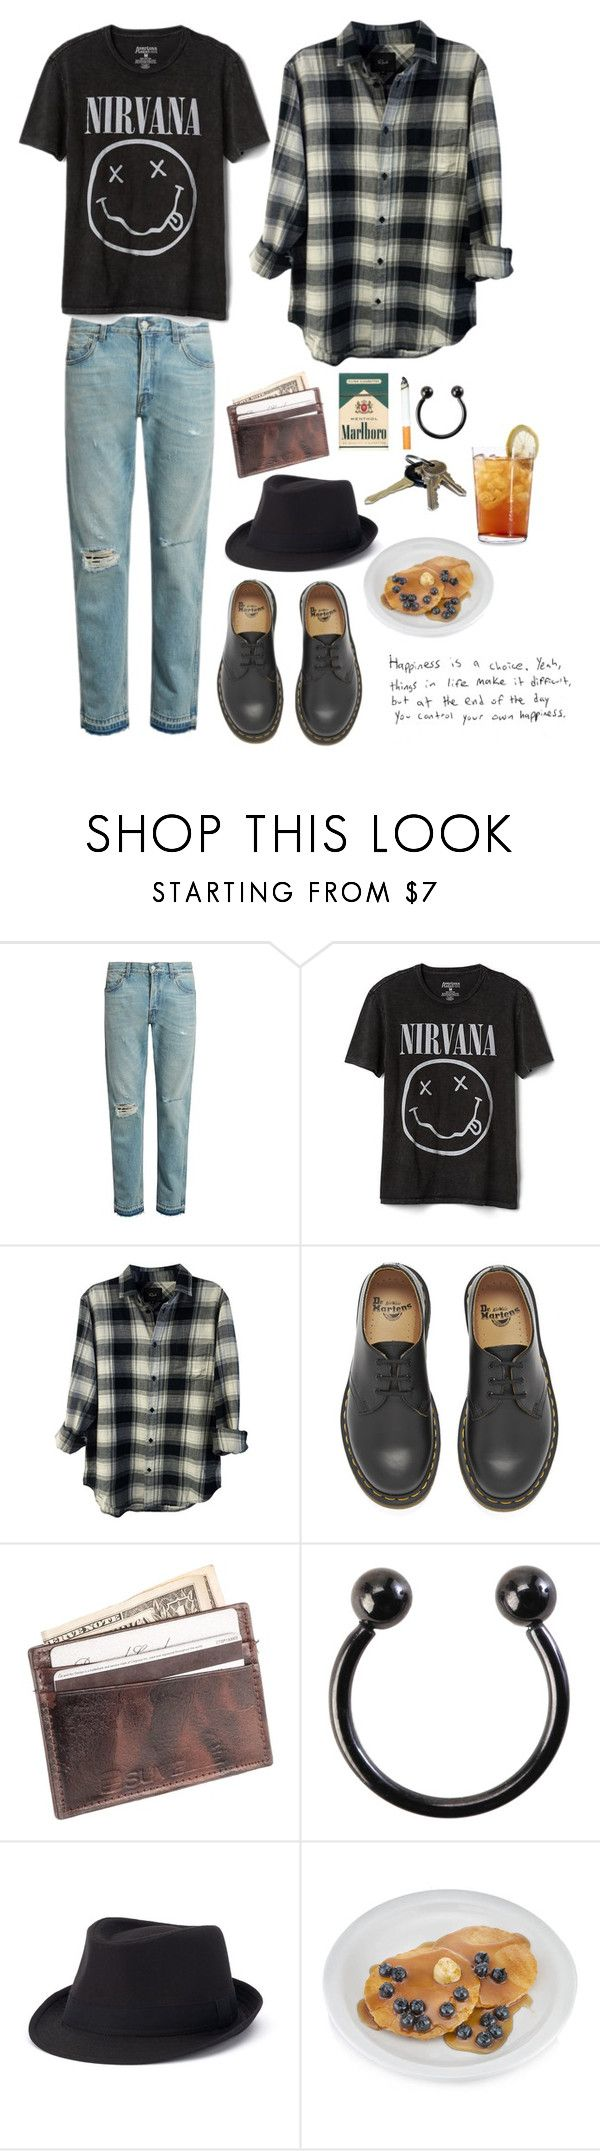 """""""Untitled #311"""" by blvckcreature ❤ liked on Polyvore featuring Gucci, Gap, Rails, Dr. Martens, Suvelle, Hot Topic, Urban Pipeline, Schott Zwiesel, men's fashion and menswear"""